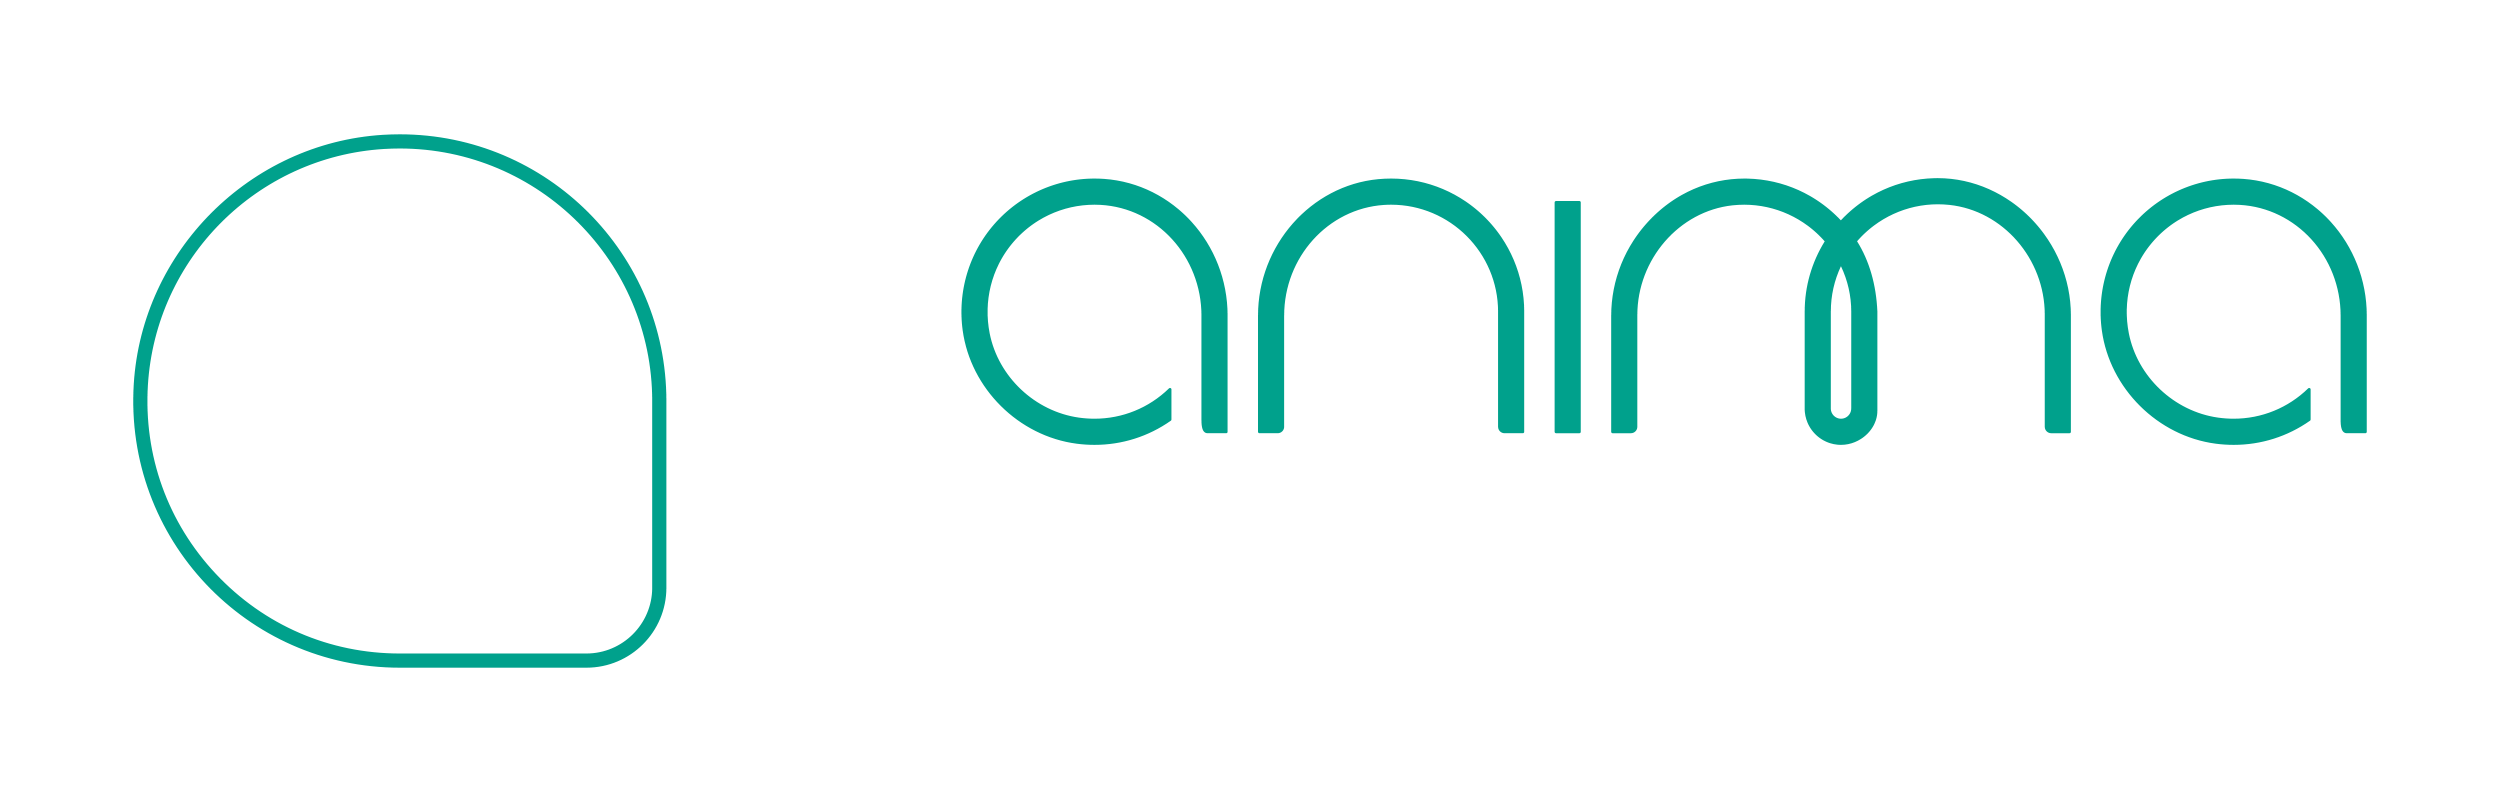 anima - online marketing für immobilienmakler